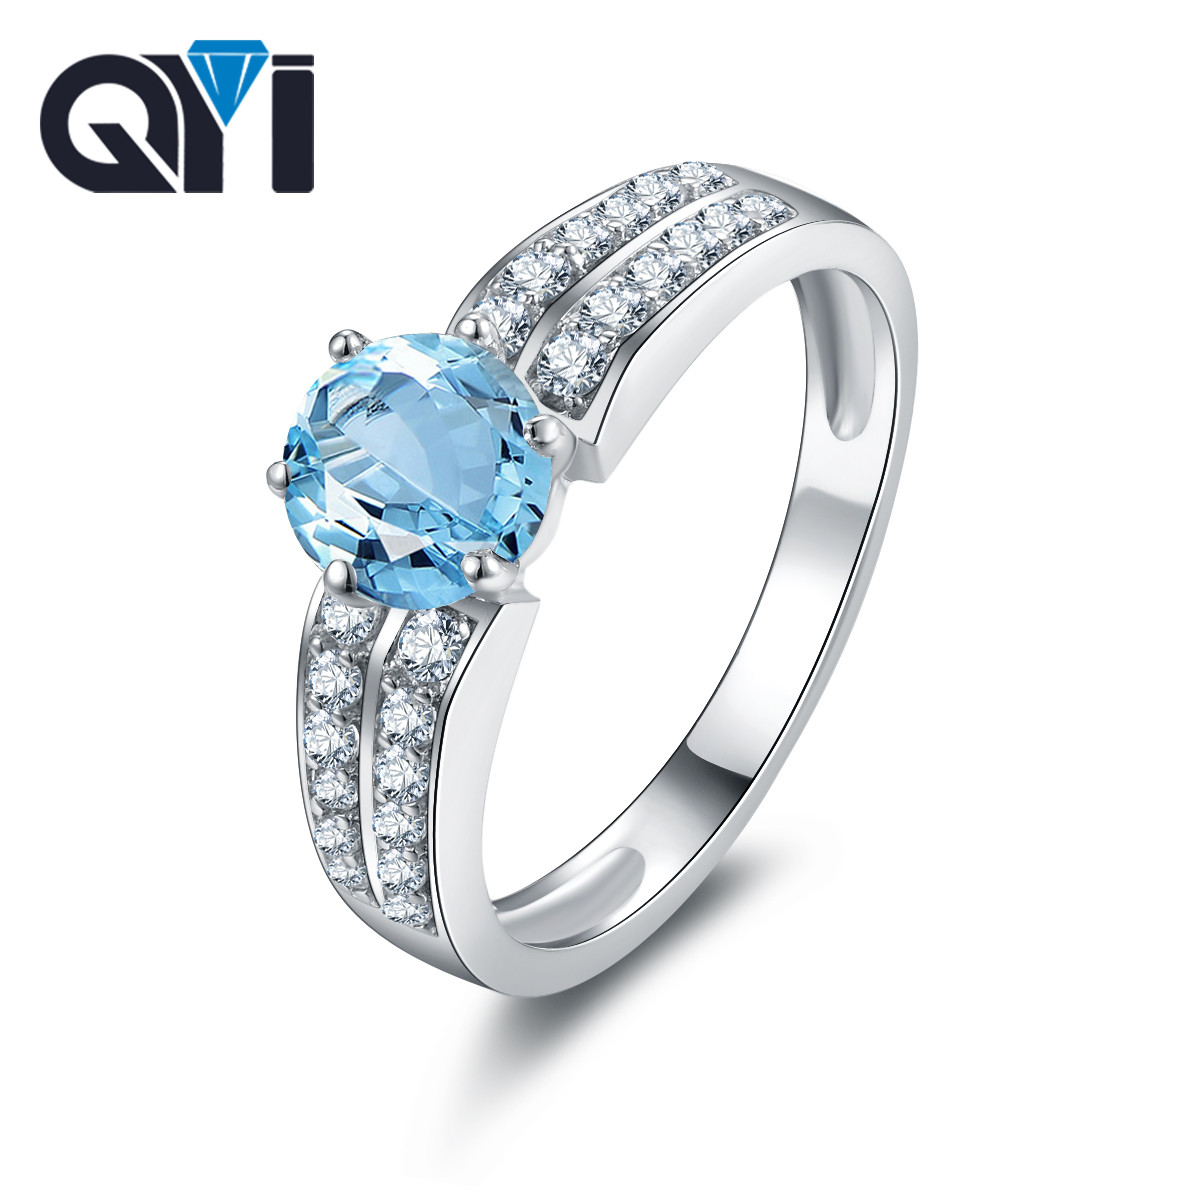 QYI Luxury 925 Sterling Silver Natural Sky Blue Topaz Engagement Ring Women Wedding Colored stones Jewelry CustomizationQYI Luxury 925 Sterling Silver Natural Sky Blue Topaz Engagement Ring Women Wedding Colored stones Jewelry Customization